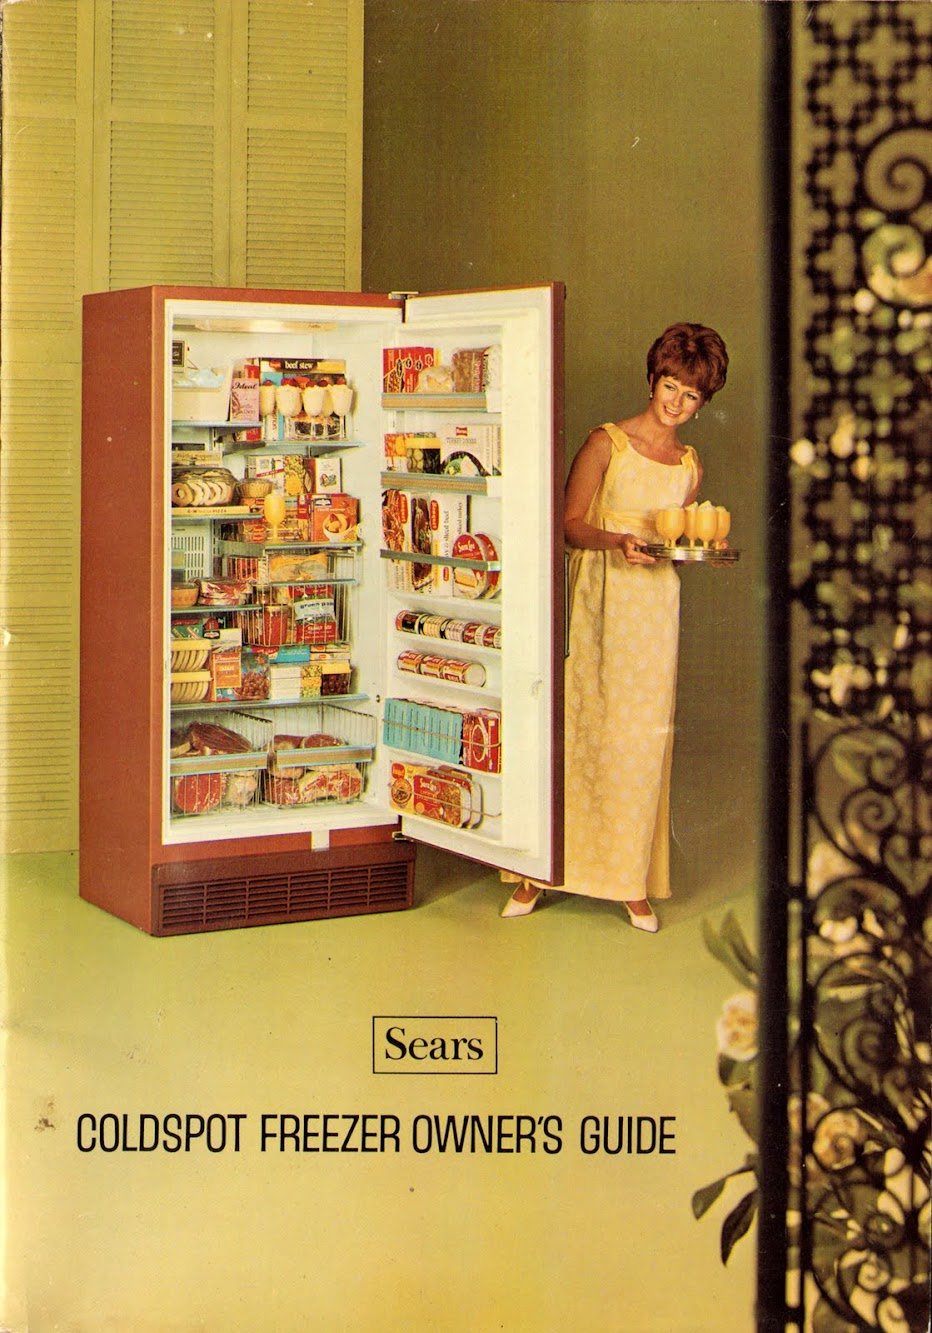 Sears Coldspot Freezer